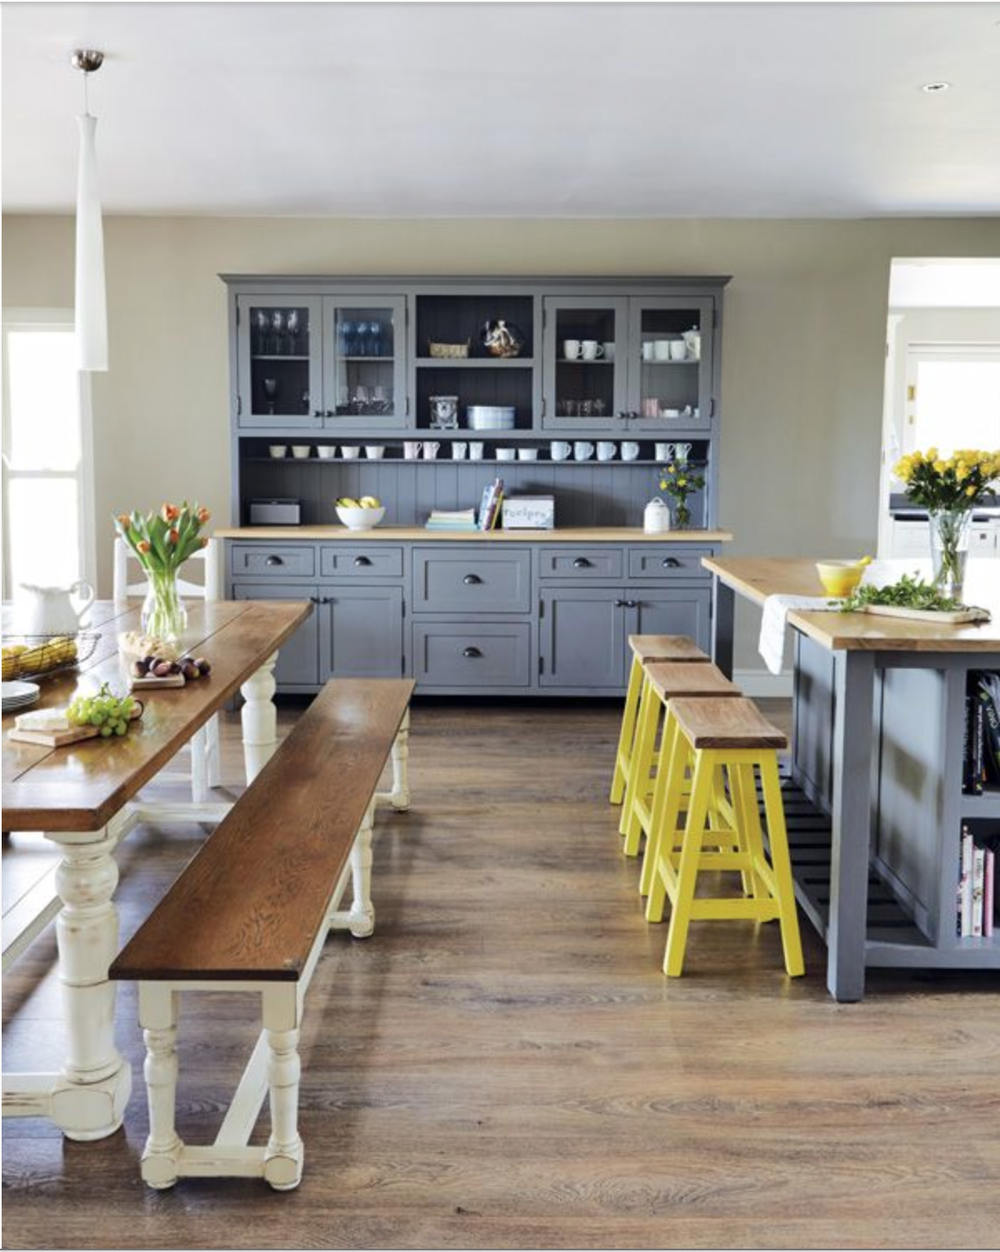 Without those yellow stools, this space would have a completely different feel.   {Via Pinterest}